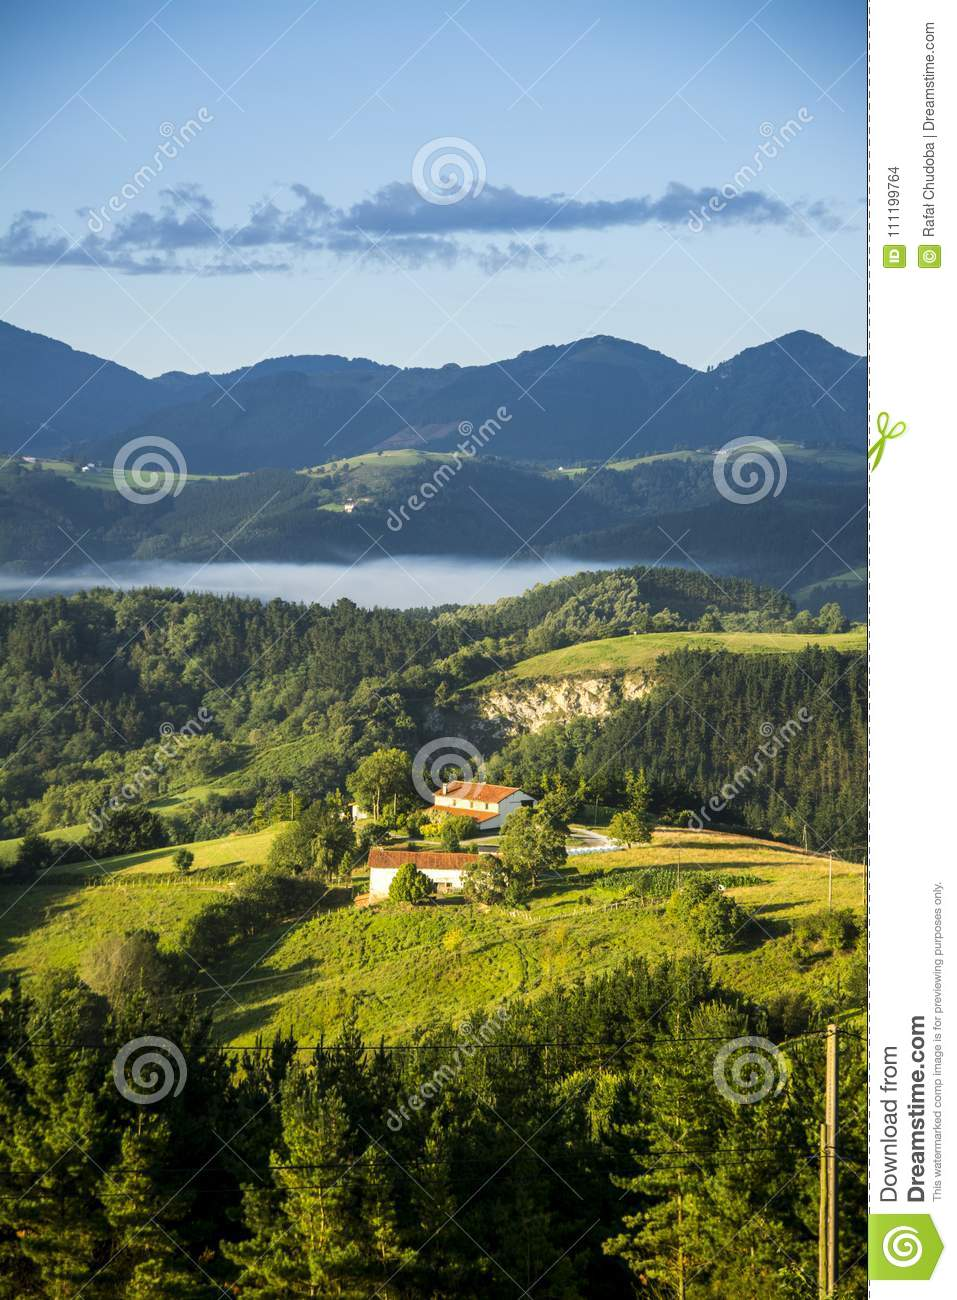 Camino Del Norte July 2017 Pyrenees Mountains Landscape On Camino Del Norte Stock Photo